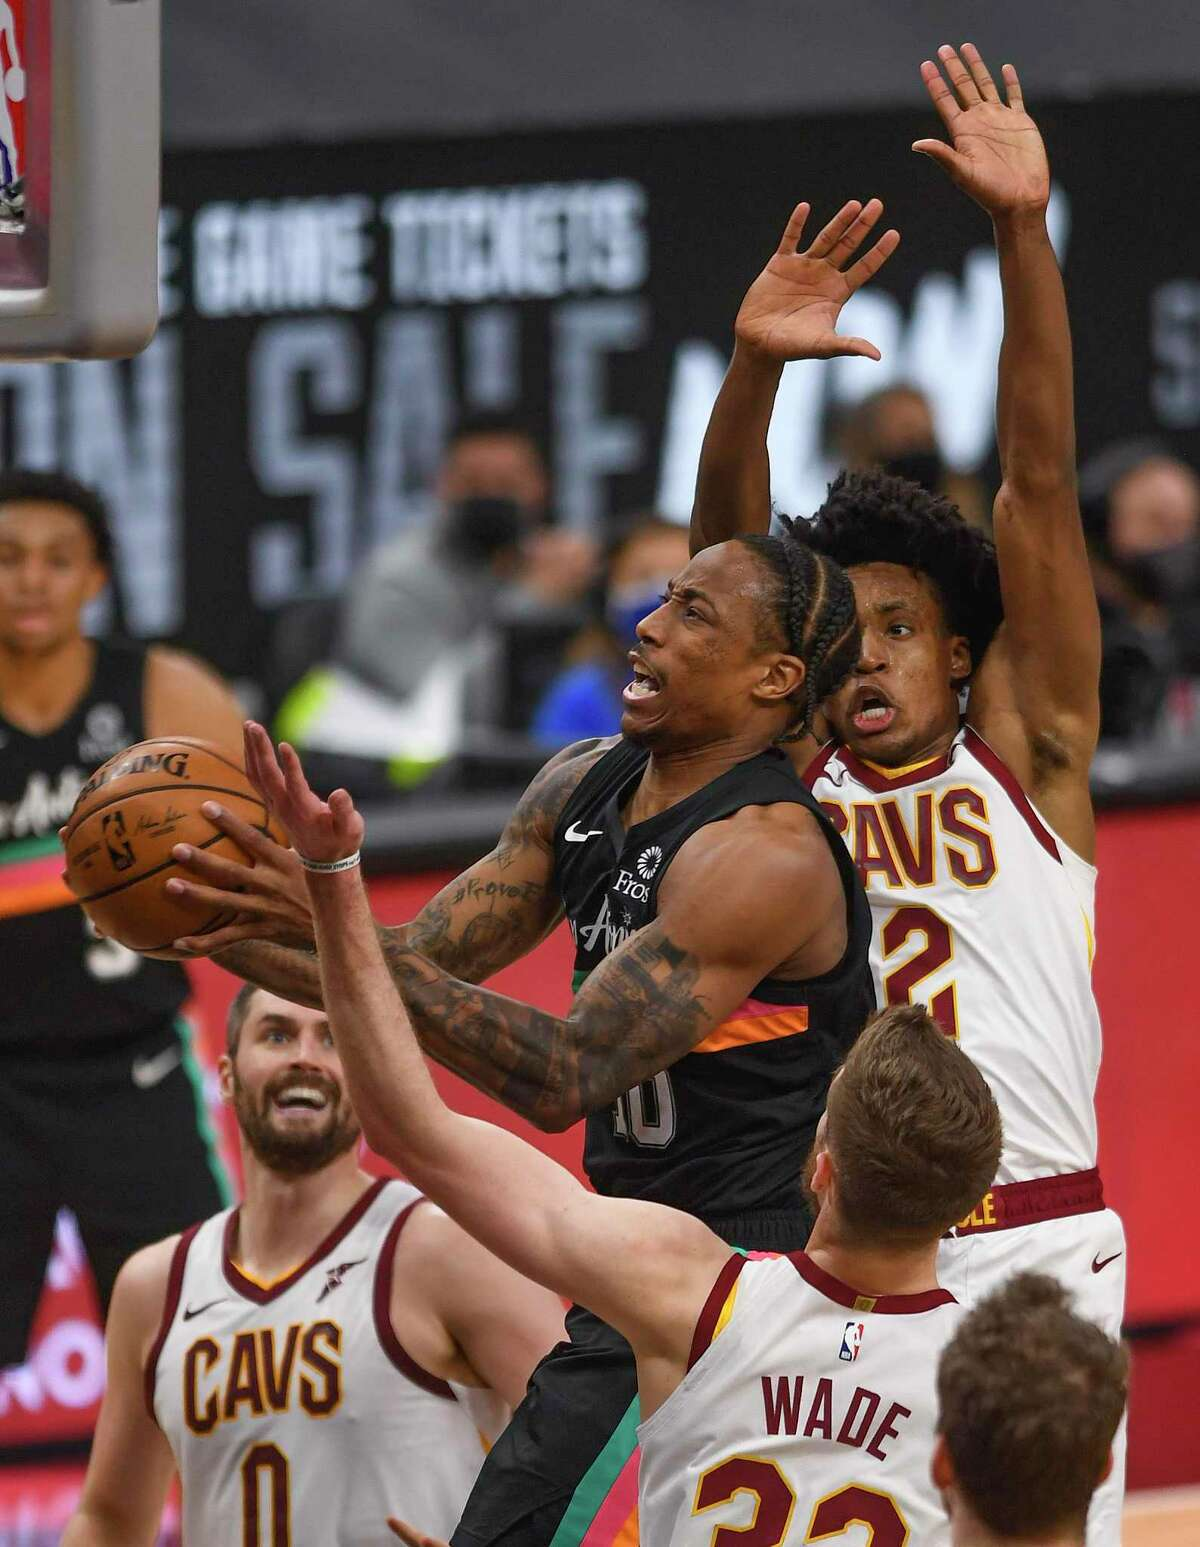 DeMar DeRozan of the San Antonio Spurs drives and shoots as Kevin Love (0), Collin Sexton (2) and Dean Wade (32) of the Cleveland Cavaliers defend during NBA action in the AT&T Center on Monday, April 5, 2021.